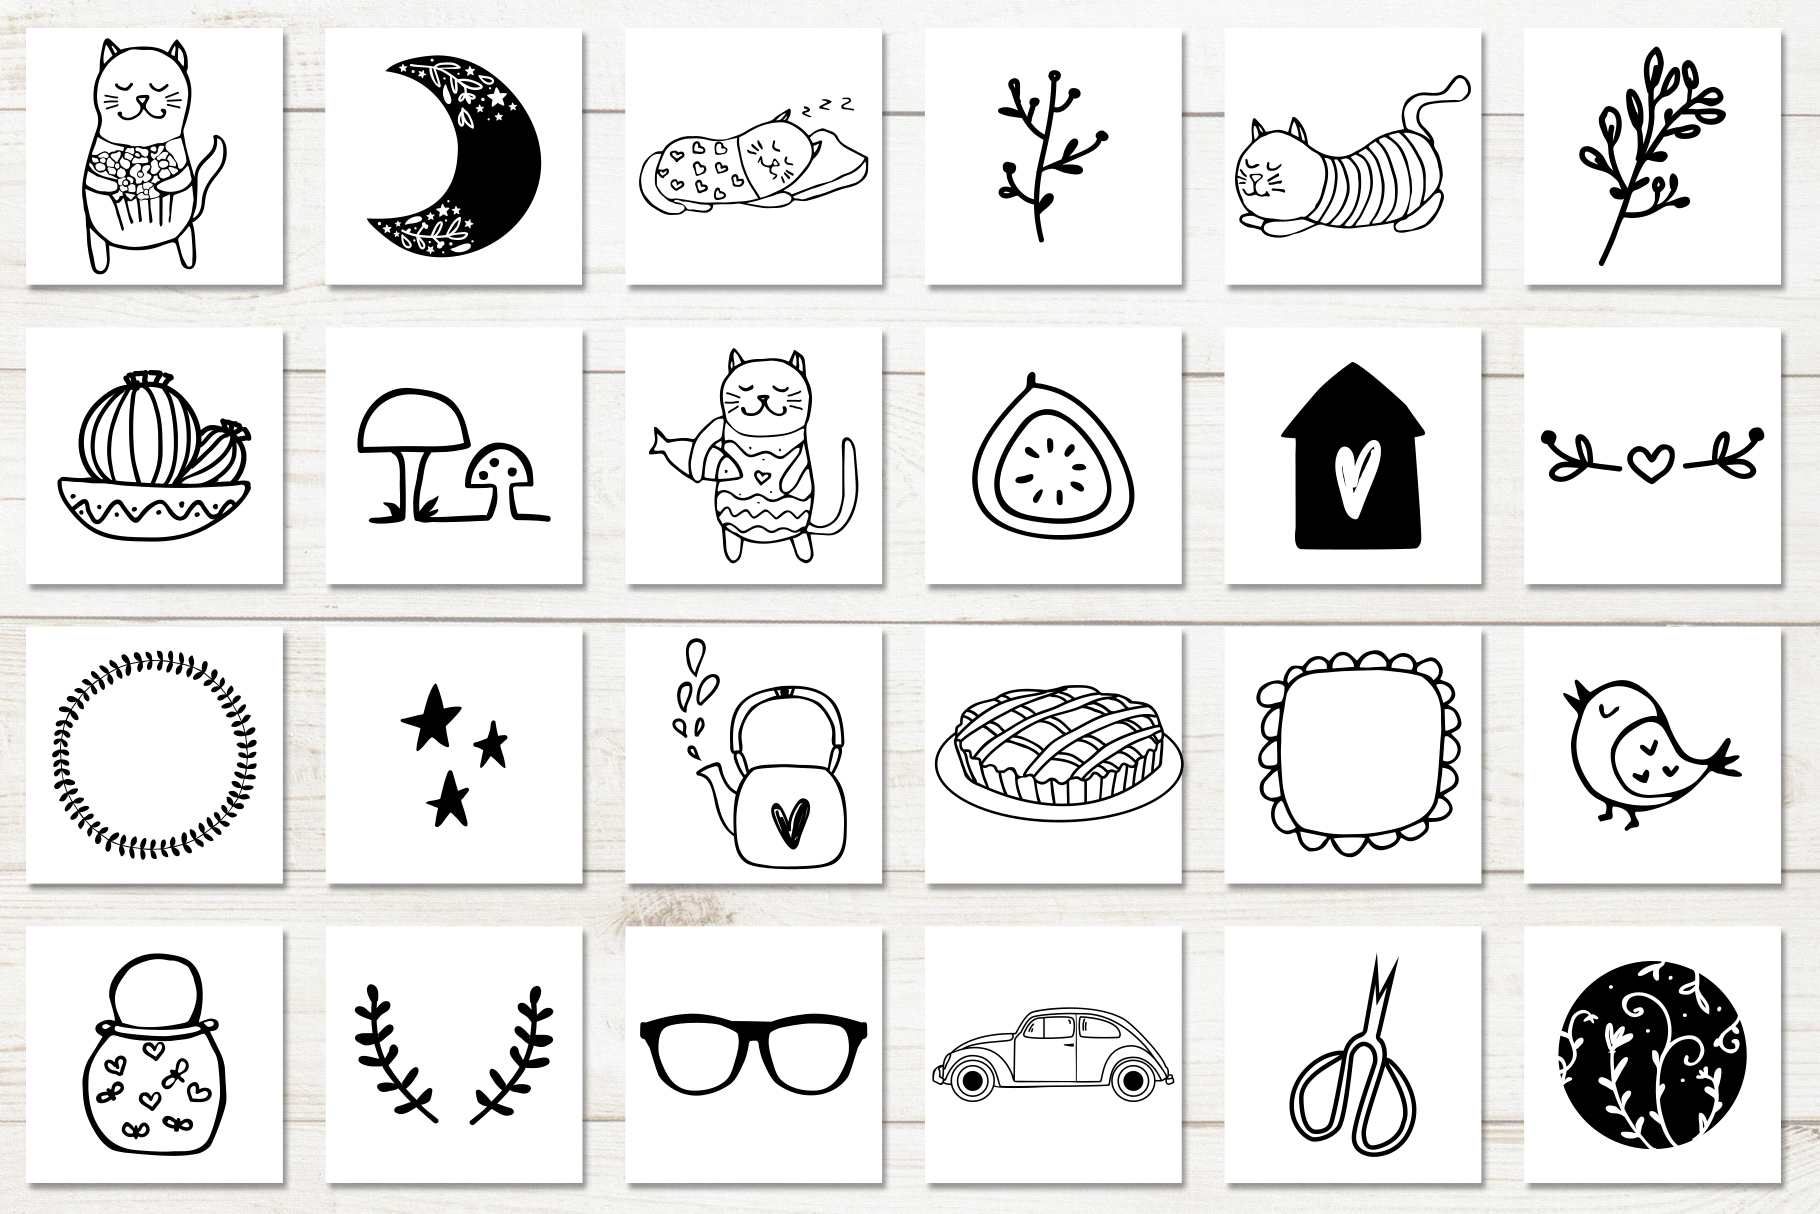 100 Hand Drawn Elements For Logo And Branding